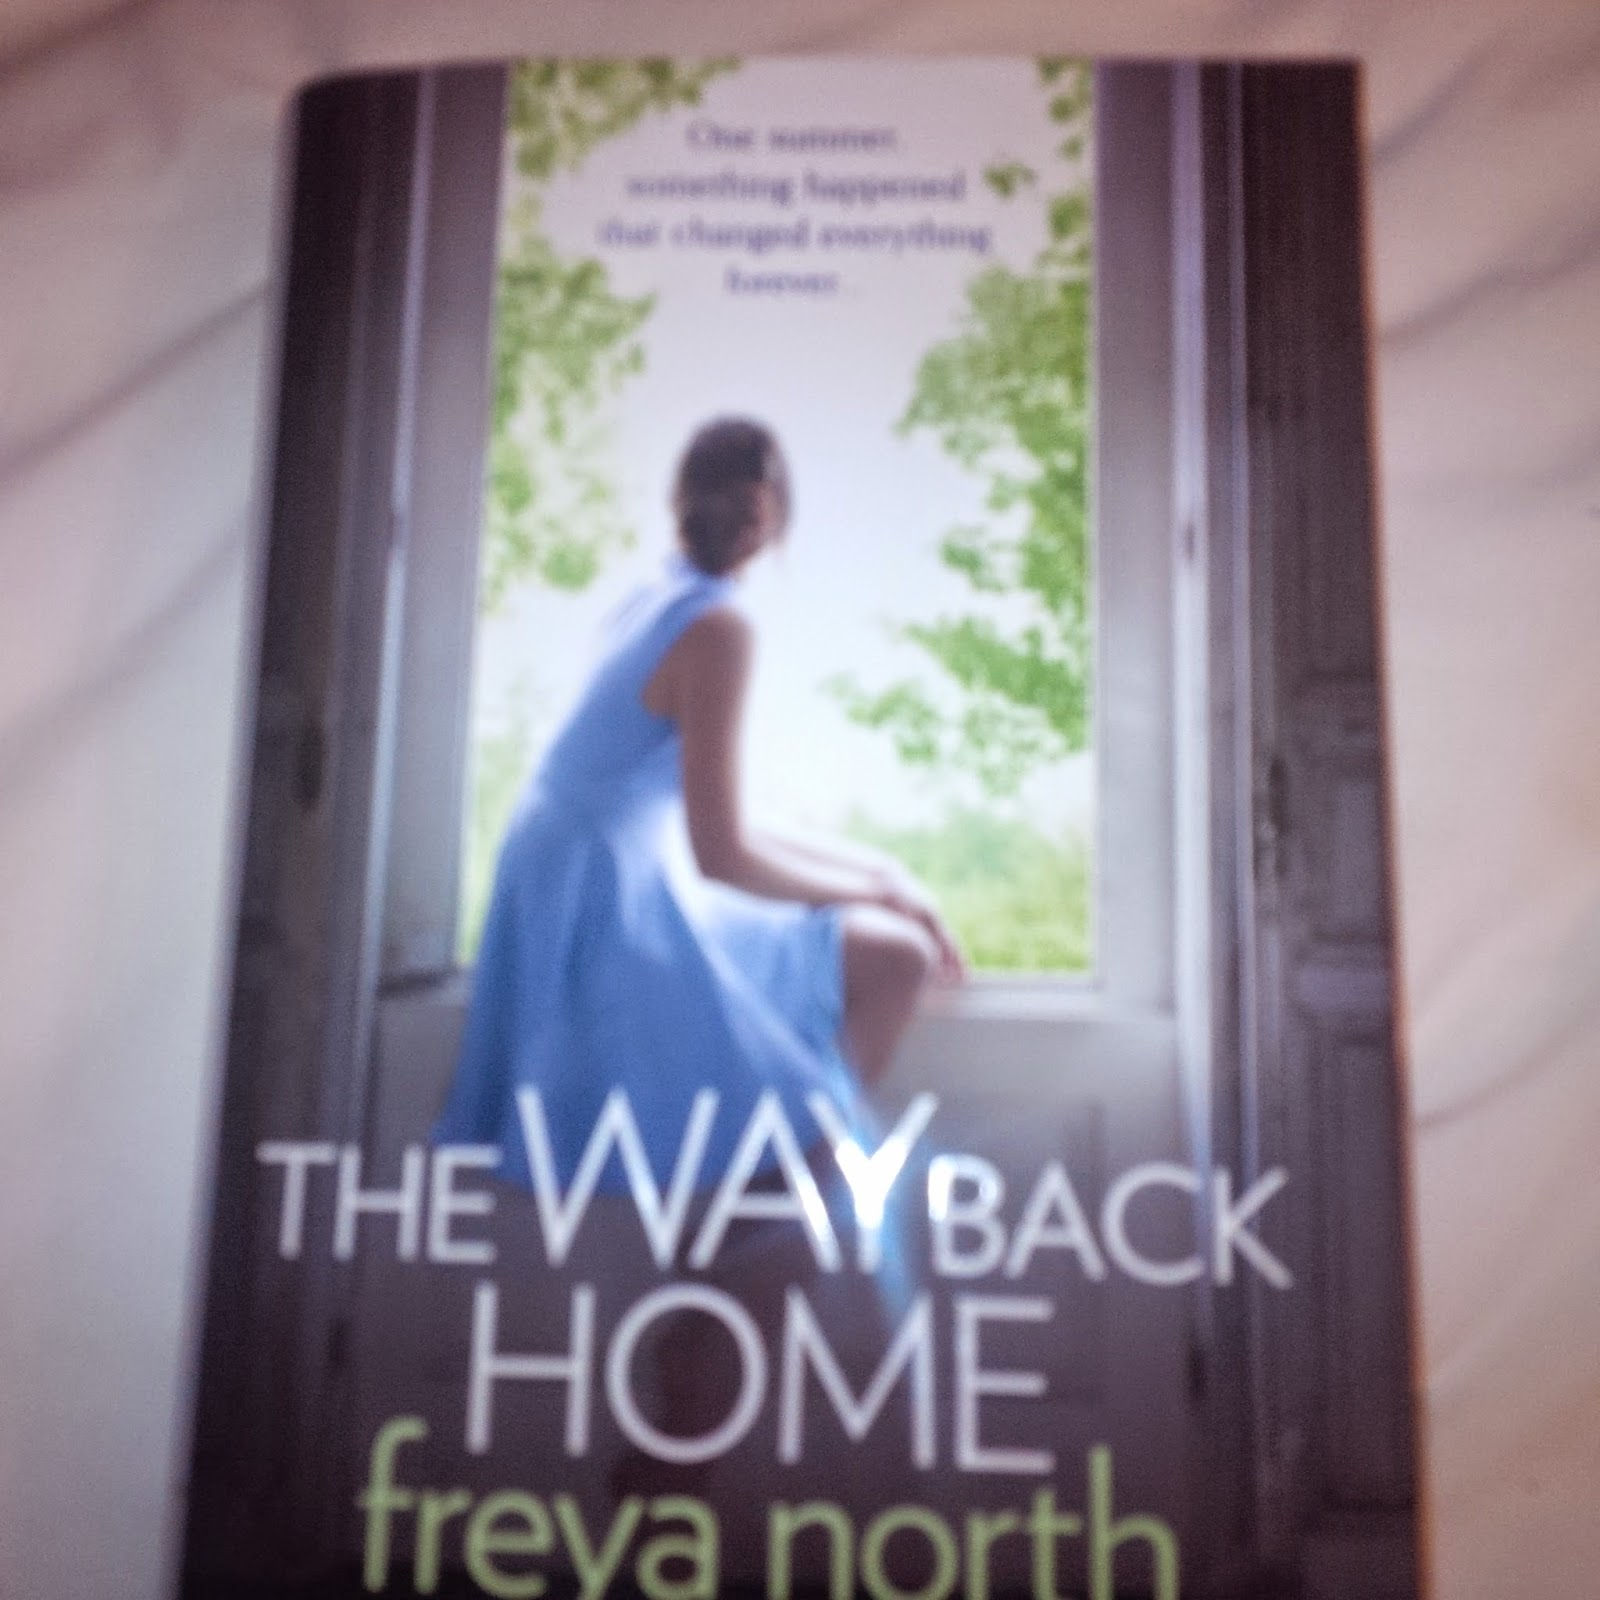 the way back home by freya north book